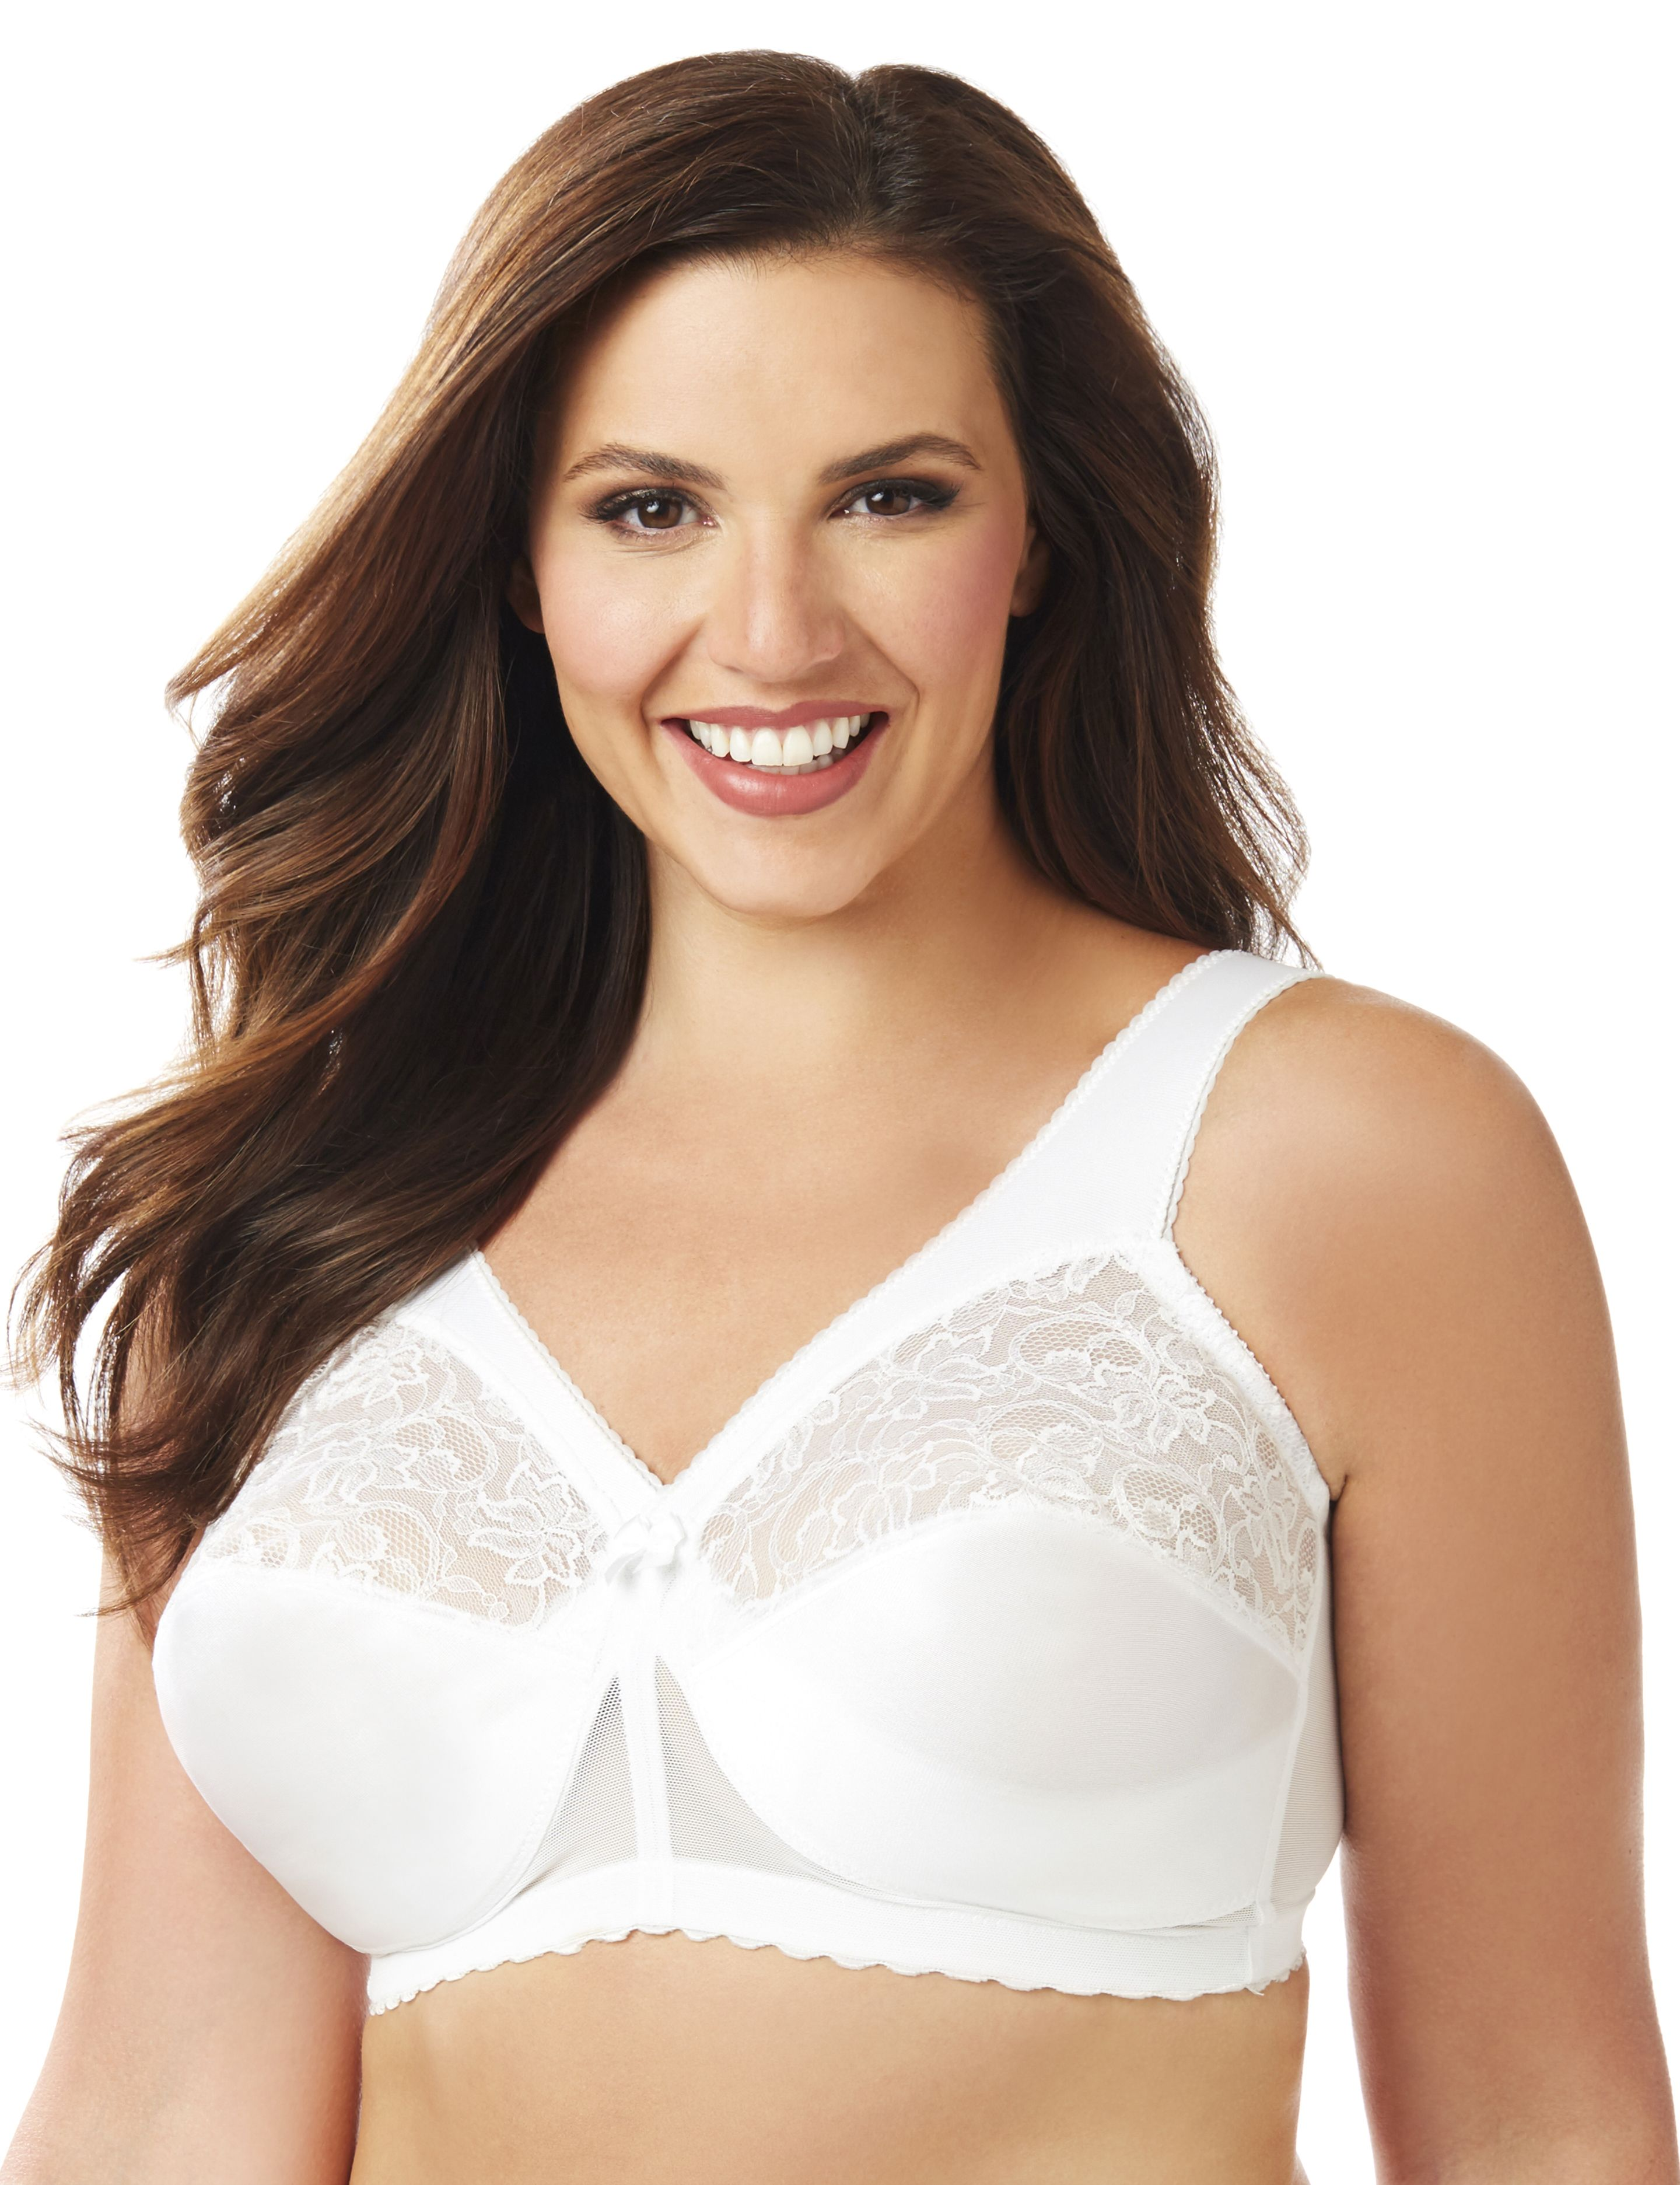 Glamorise 1000 Magic Lift No-Wire Bra Glamorise 1000 Magic Lift No-Wire Bra MP-000105351